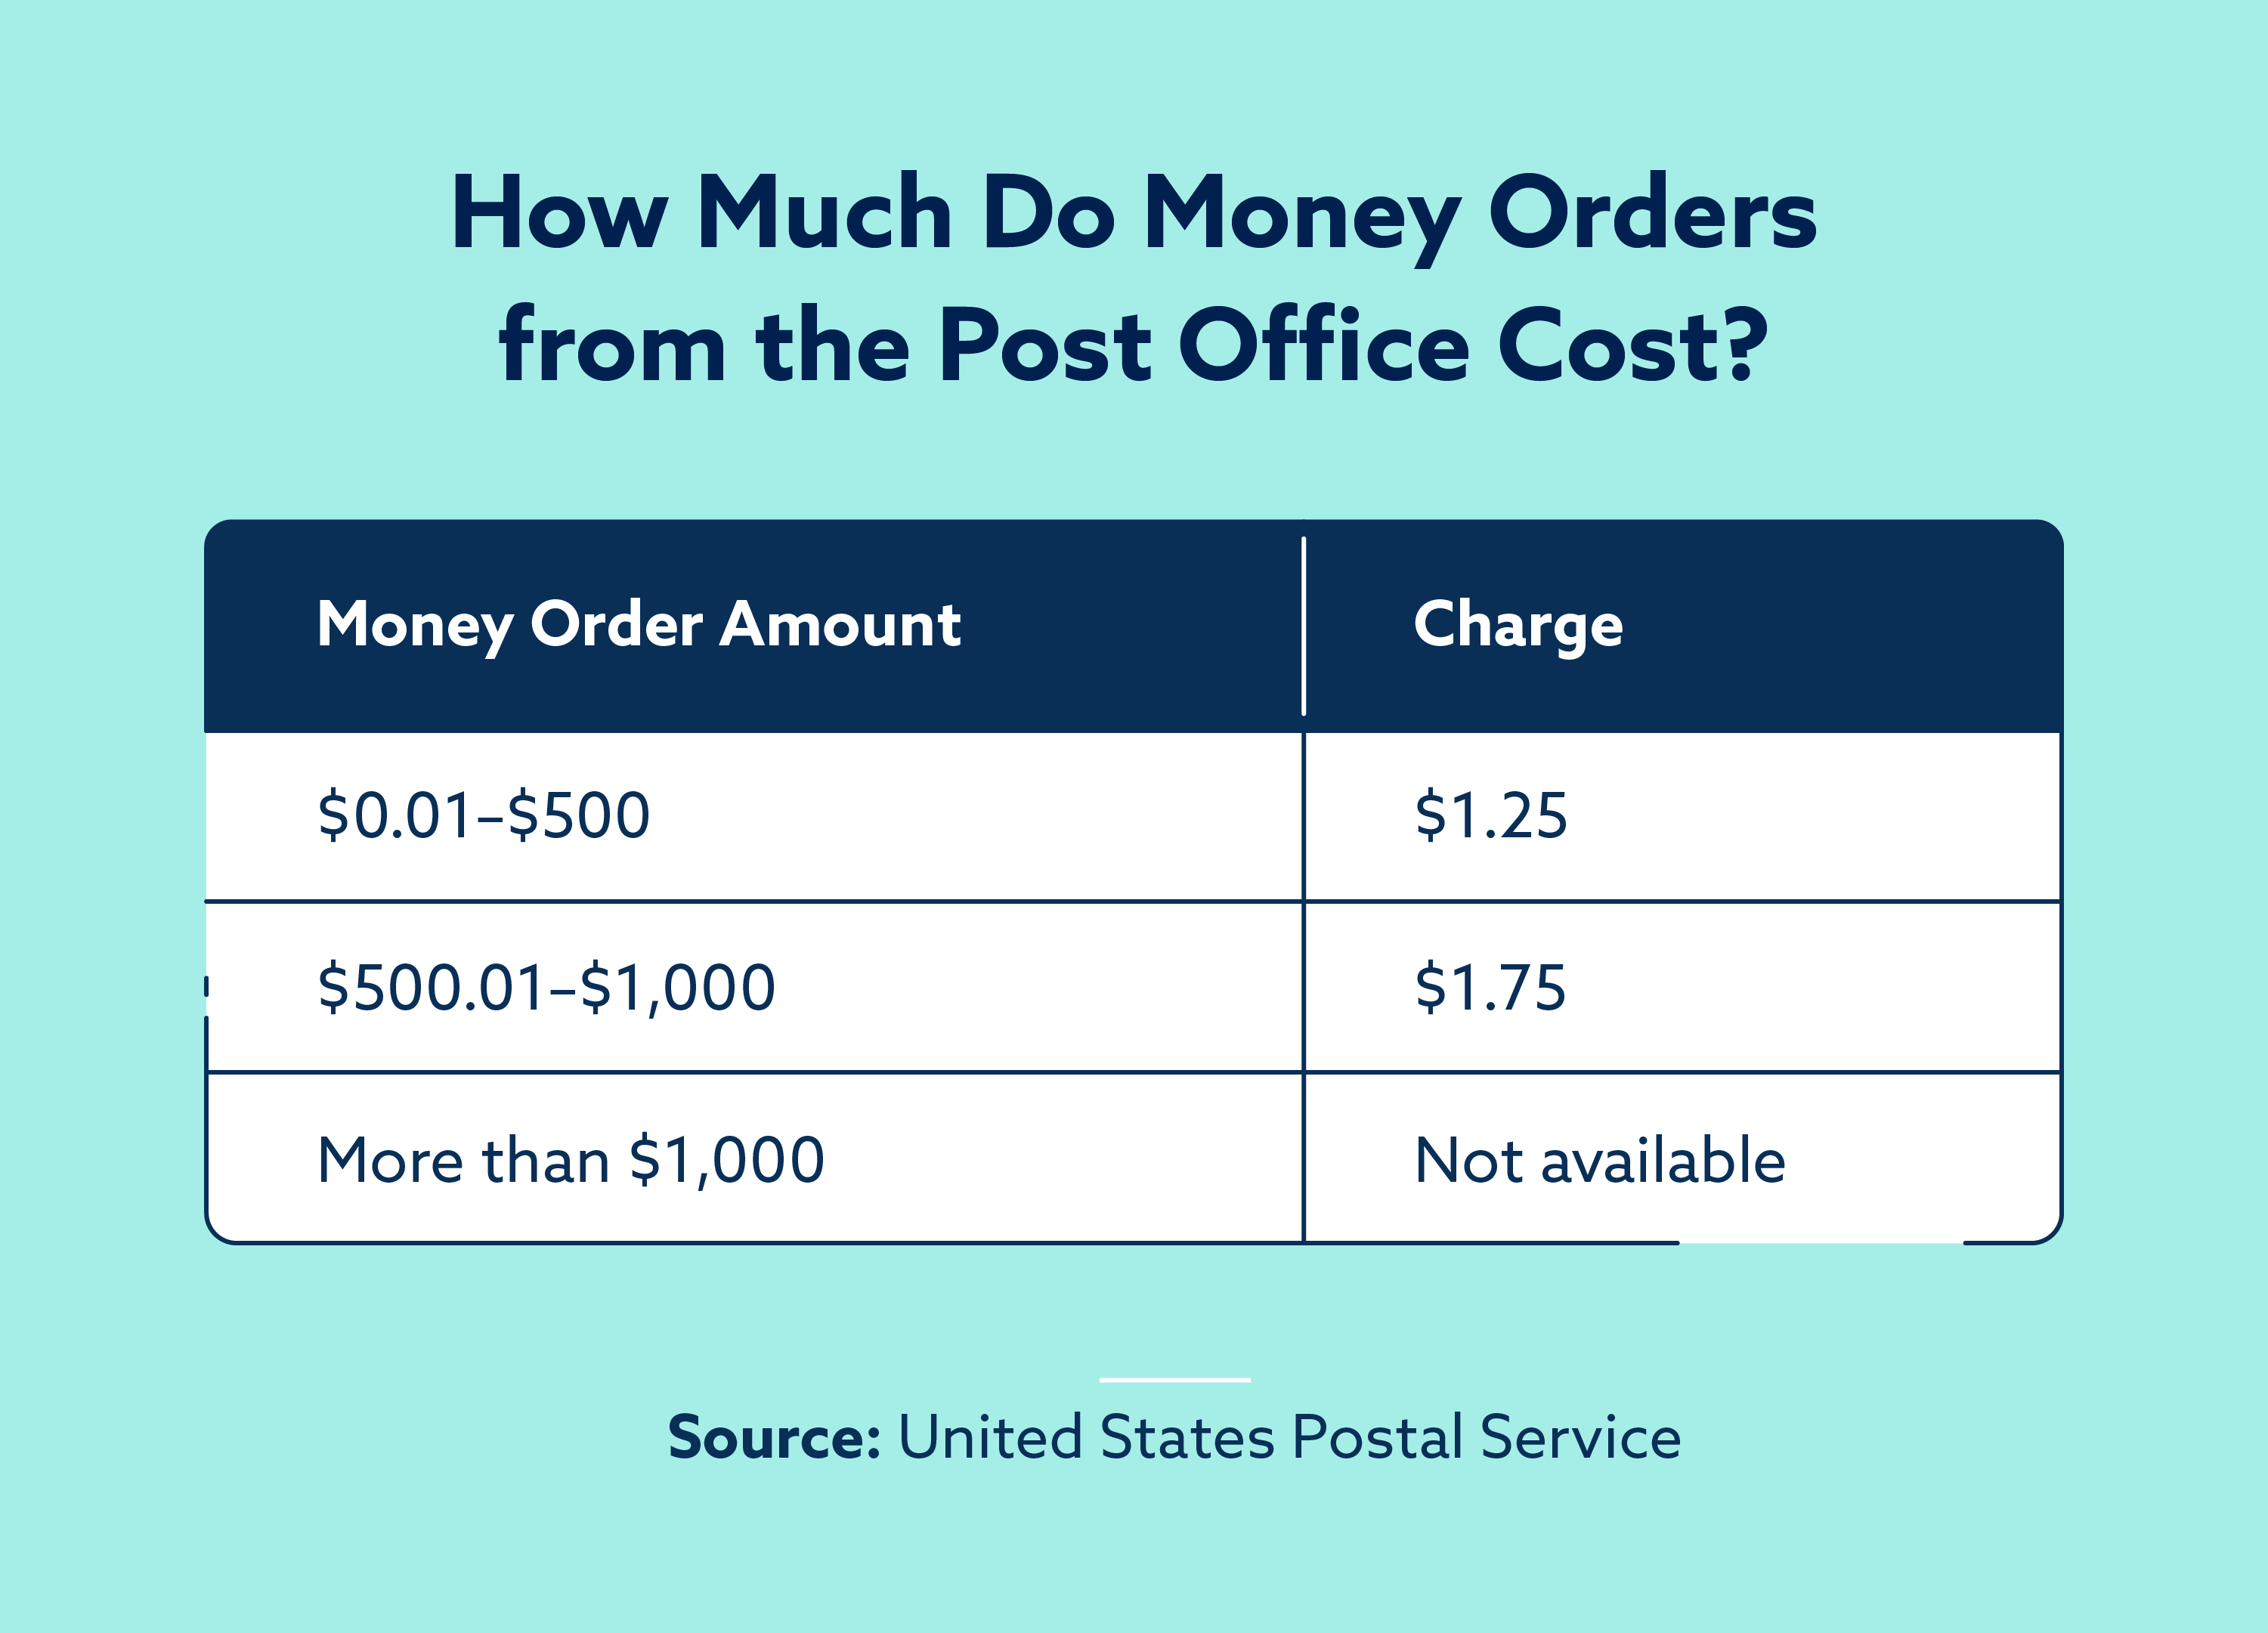 How much do money orders from the Post Office cost?